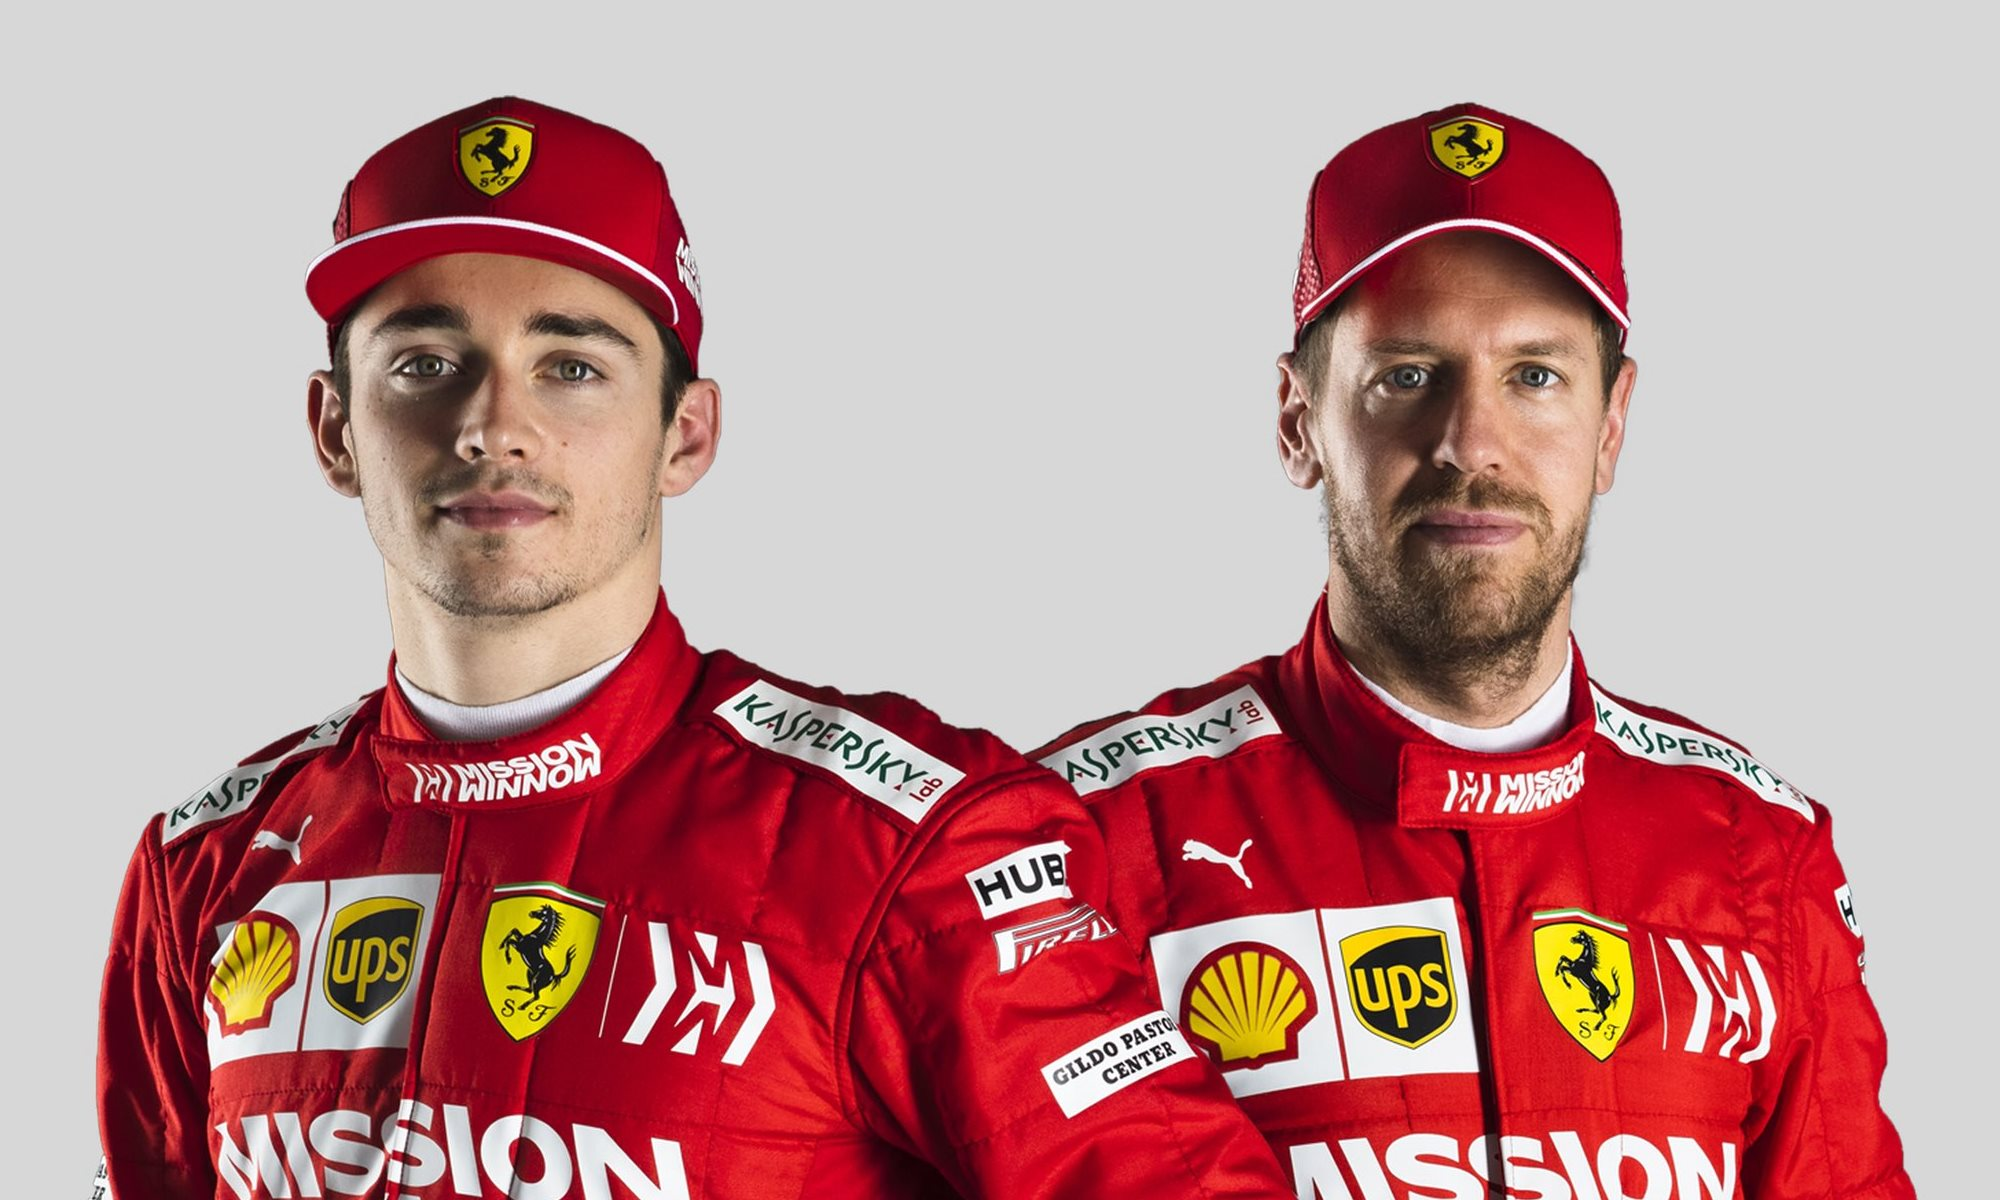 Leclerc and Vettel at Scuderia Ferrari